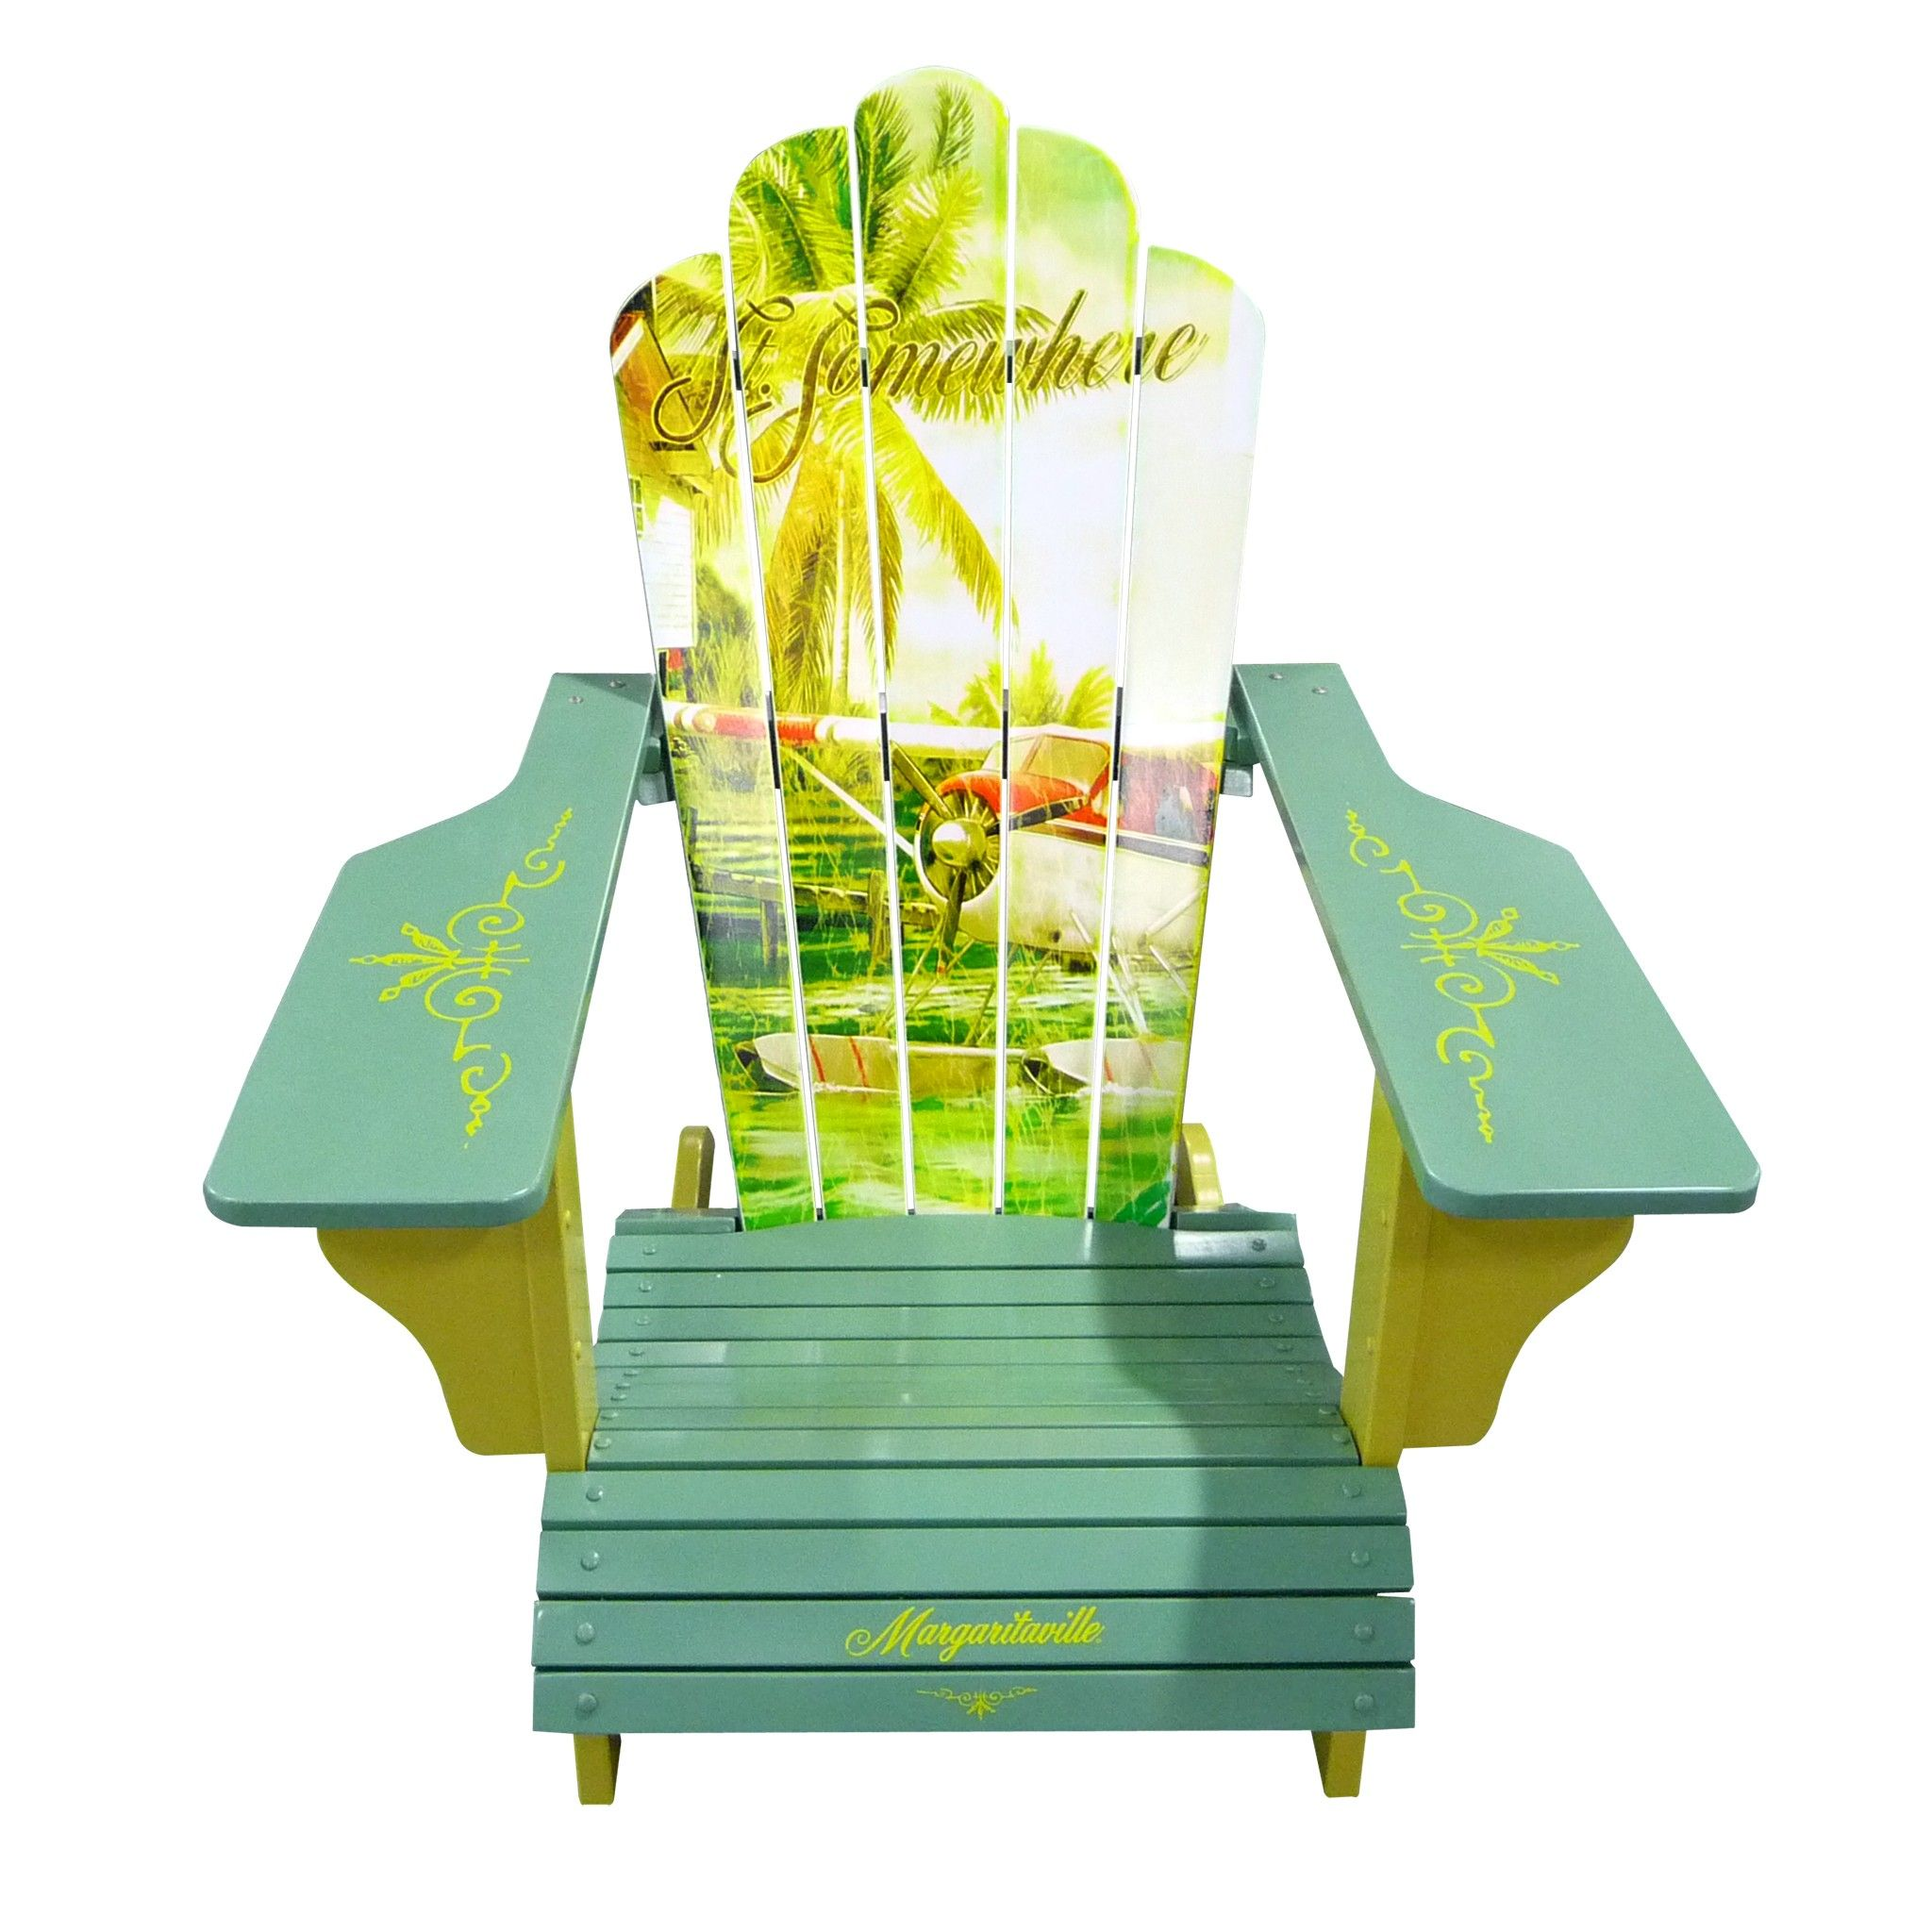 Bring Paradise A Little Closer To Where You Are With The Margaritaville  Adirondack Chair. Description